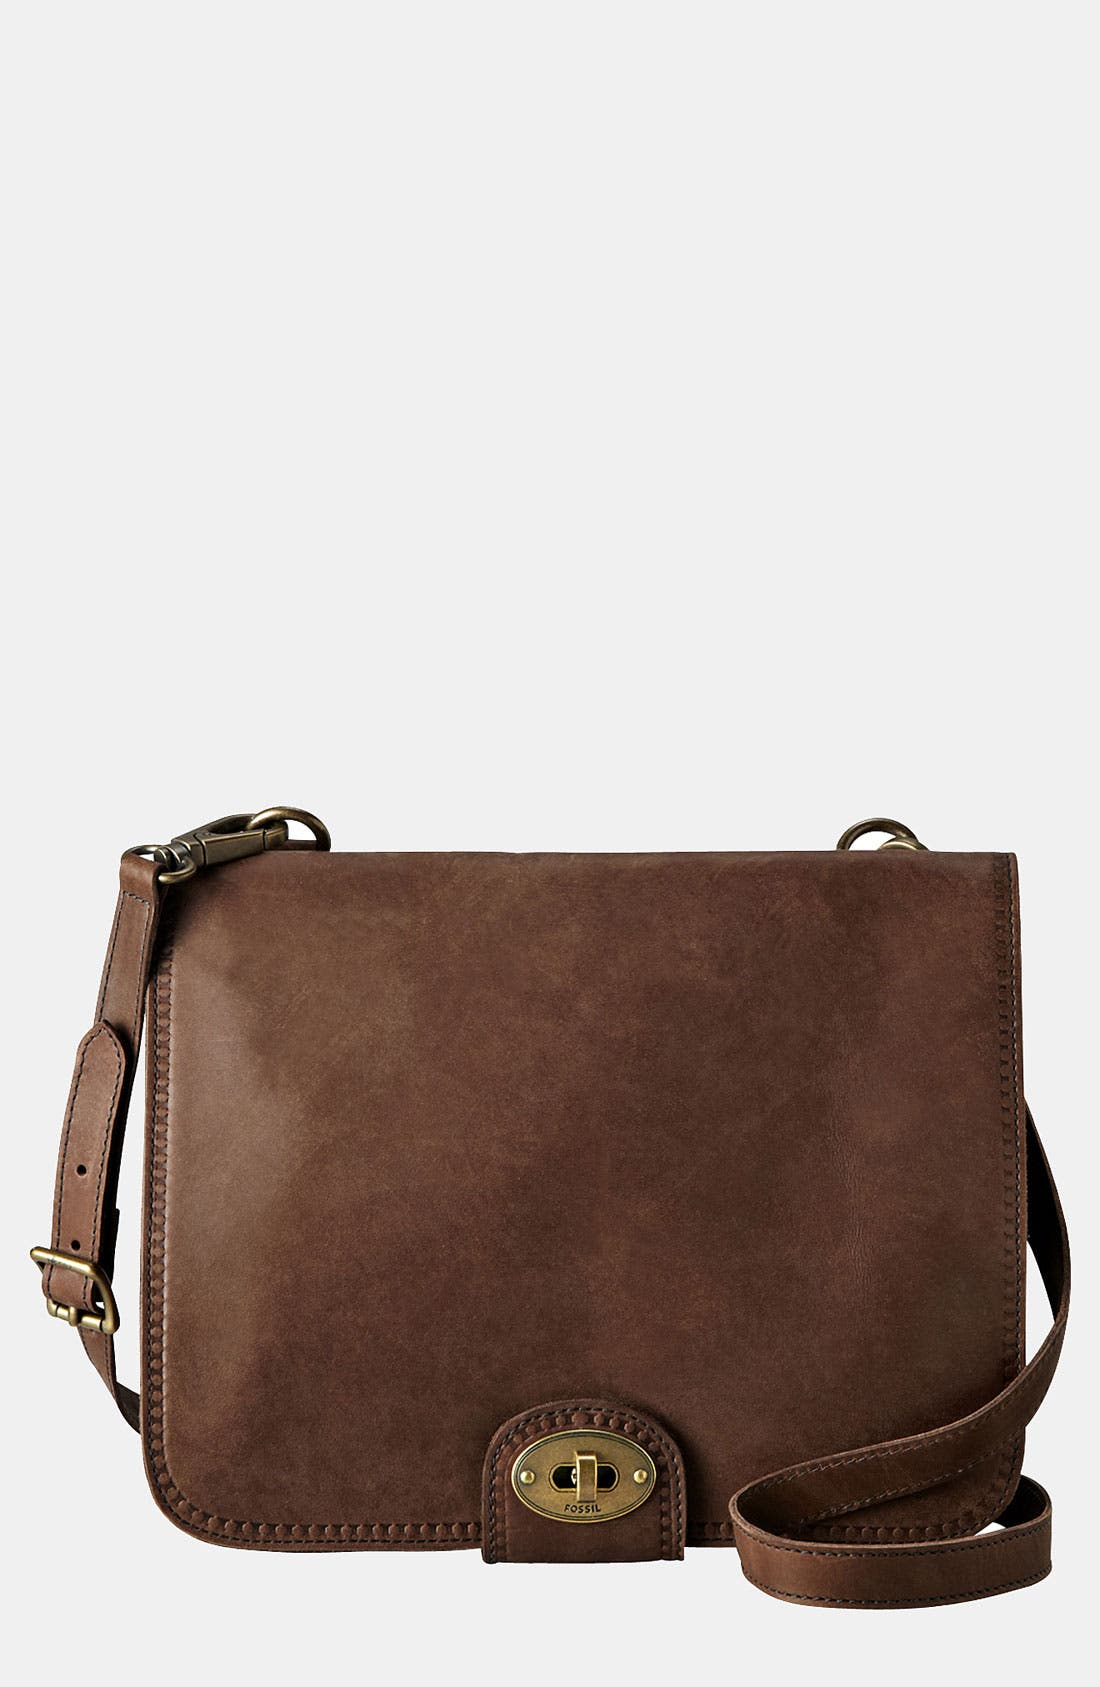 Alternate Image 1 Selected - Fossil Crossbody Bag